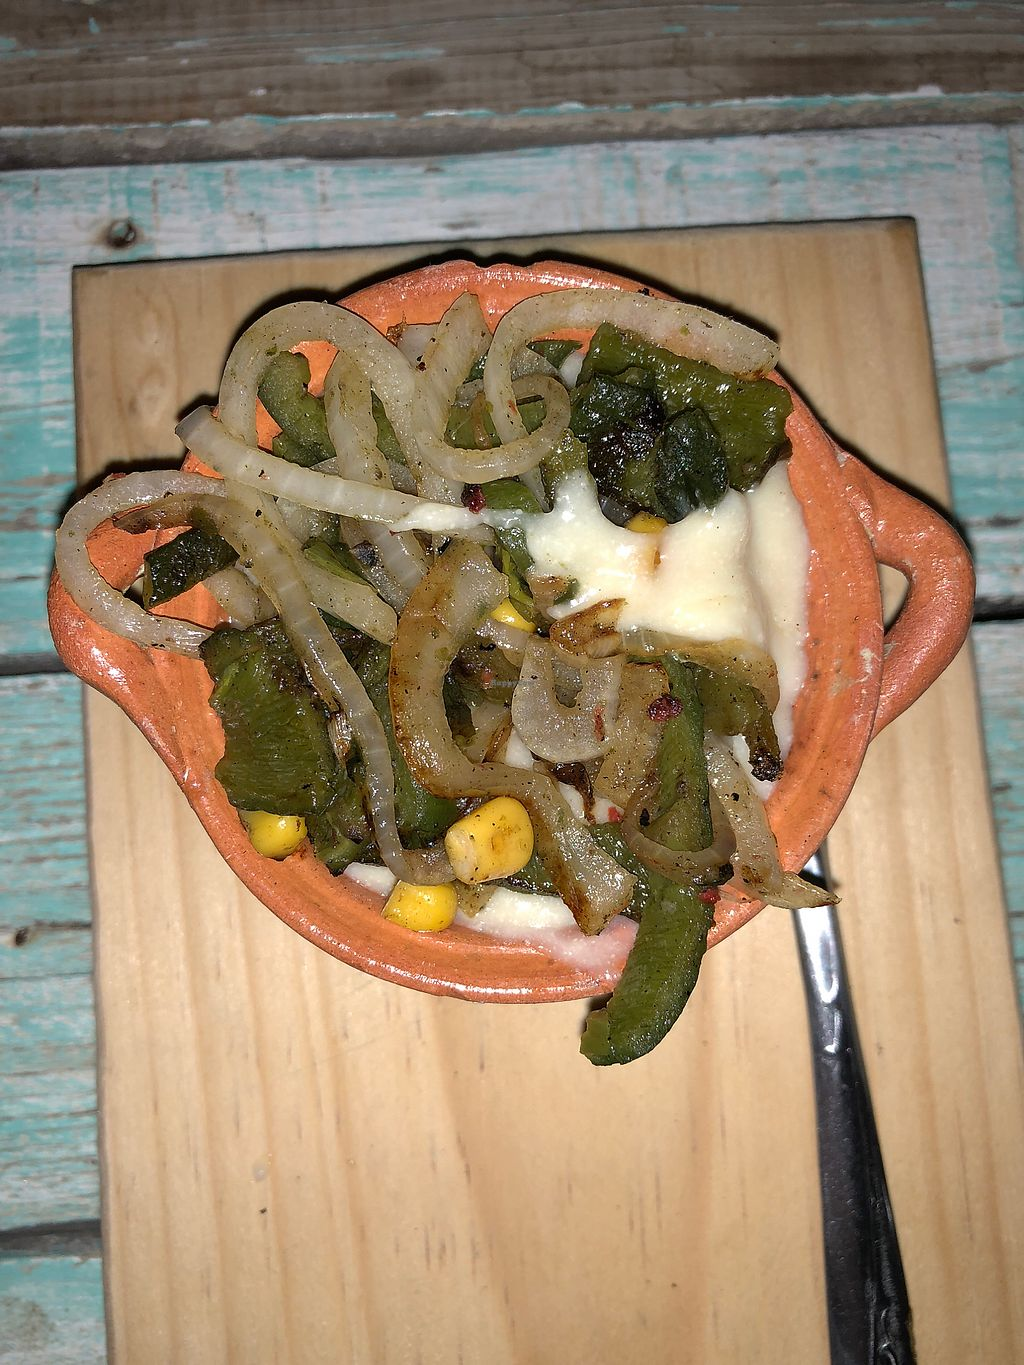 """Photo of La Rana Vegana  by <a href=""""/members/profile/RyanPamplin"""">RyanPamplin</a> <br/>Cheese Fondue we put on everything - OMG! <br/> January 21, 2018  - <a href='/contact/abuse/image/83802/349491'>Report</a>"""